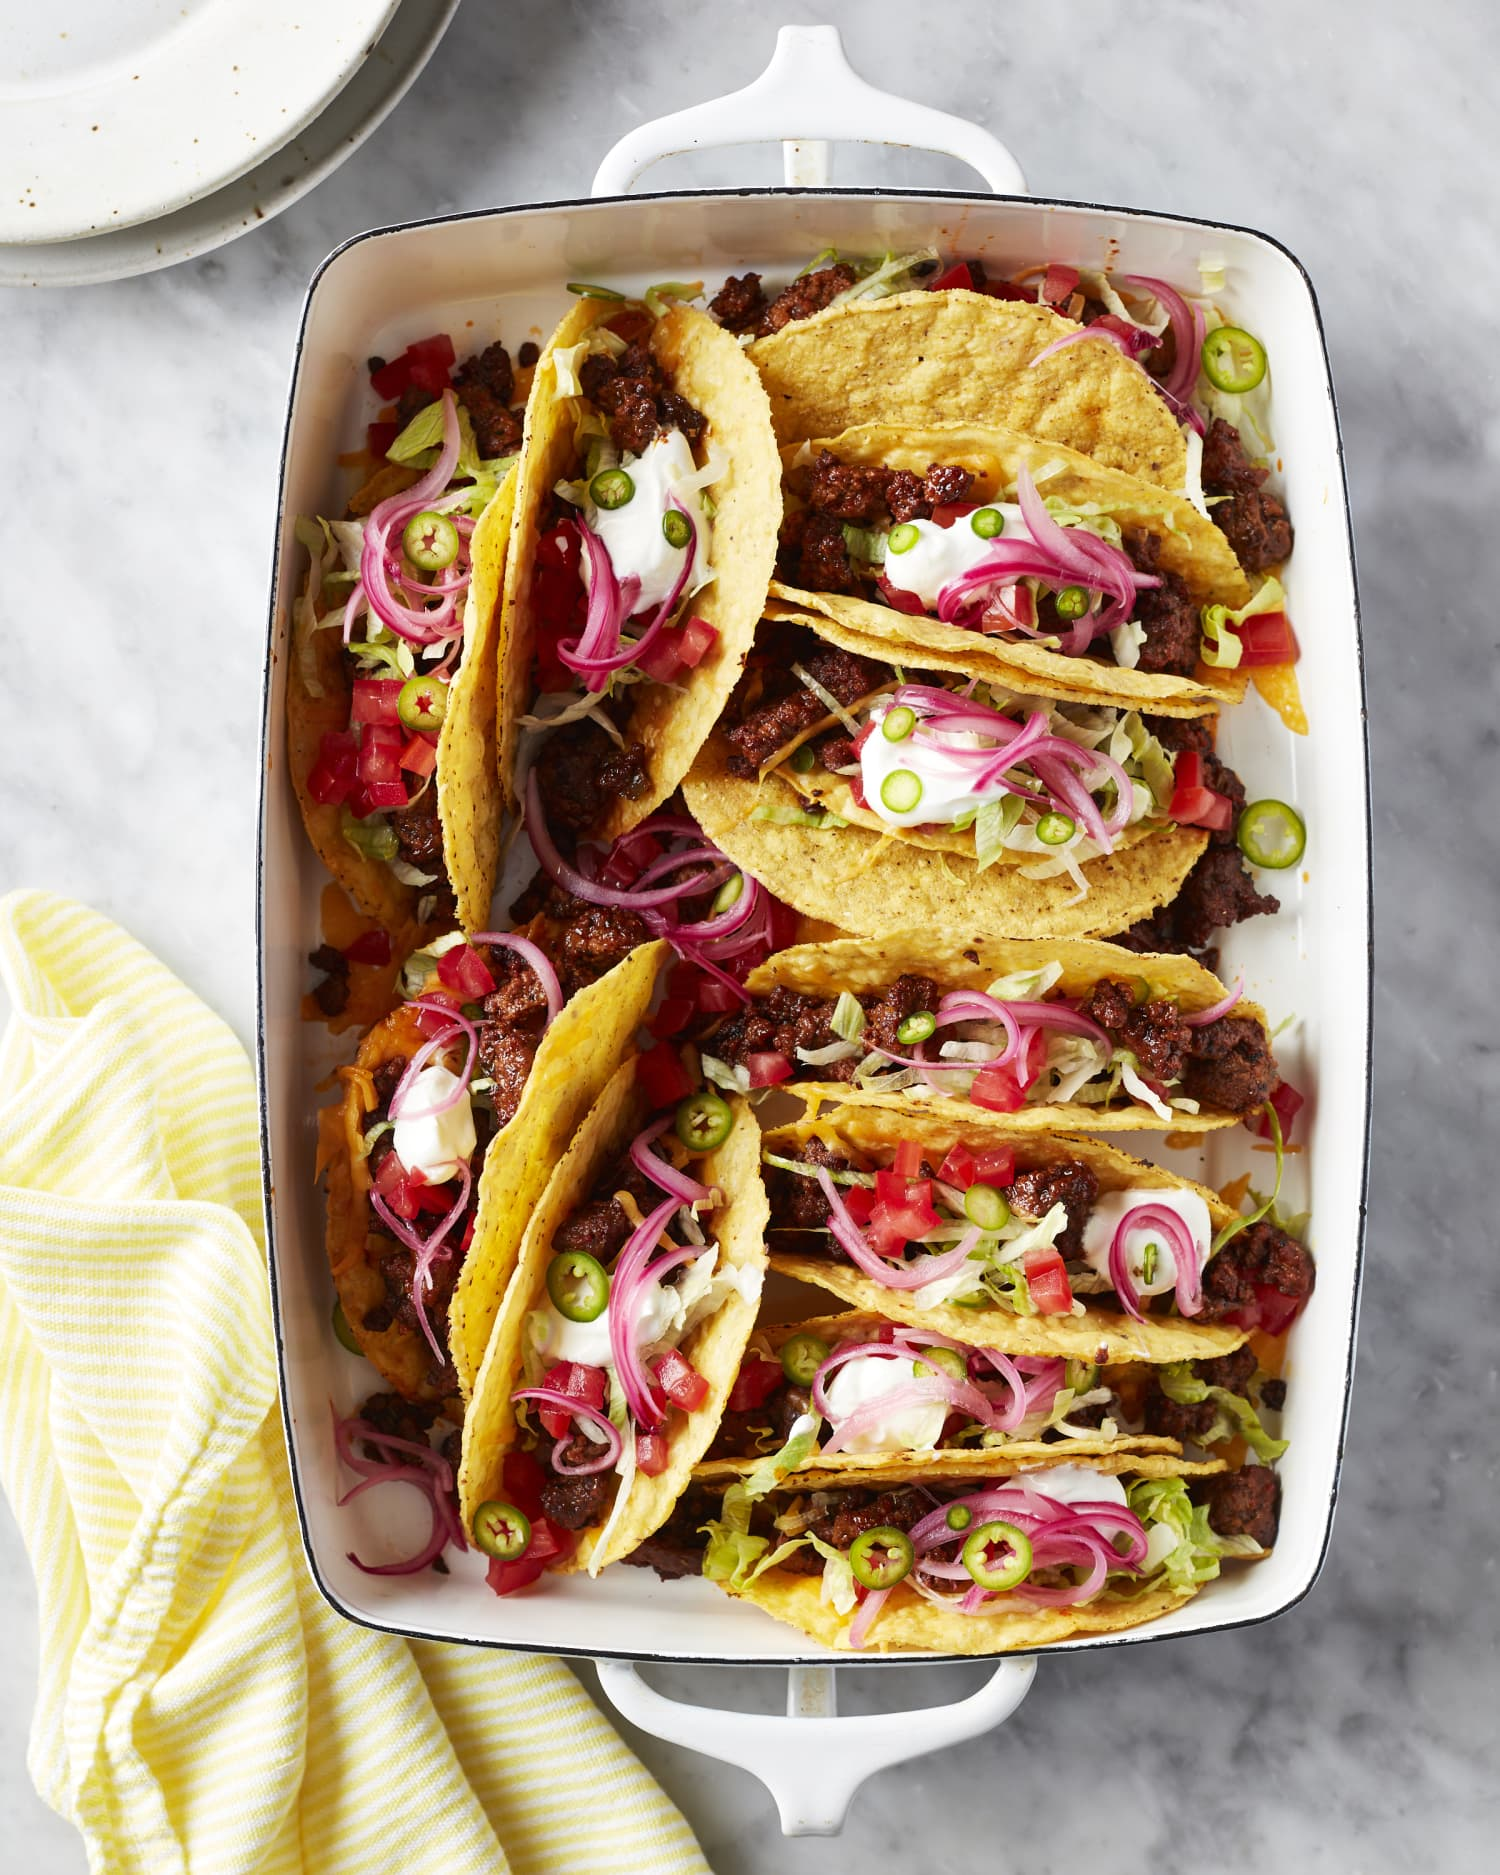 These Crispy Beef Tacos Are the Nostalgic Dinner I Need Right Now